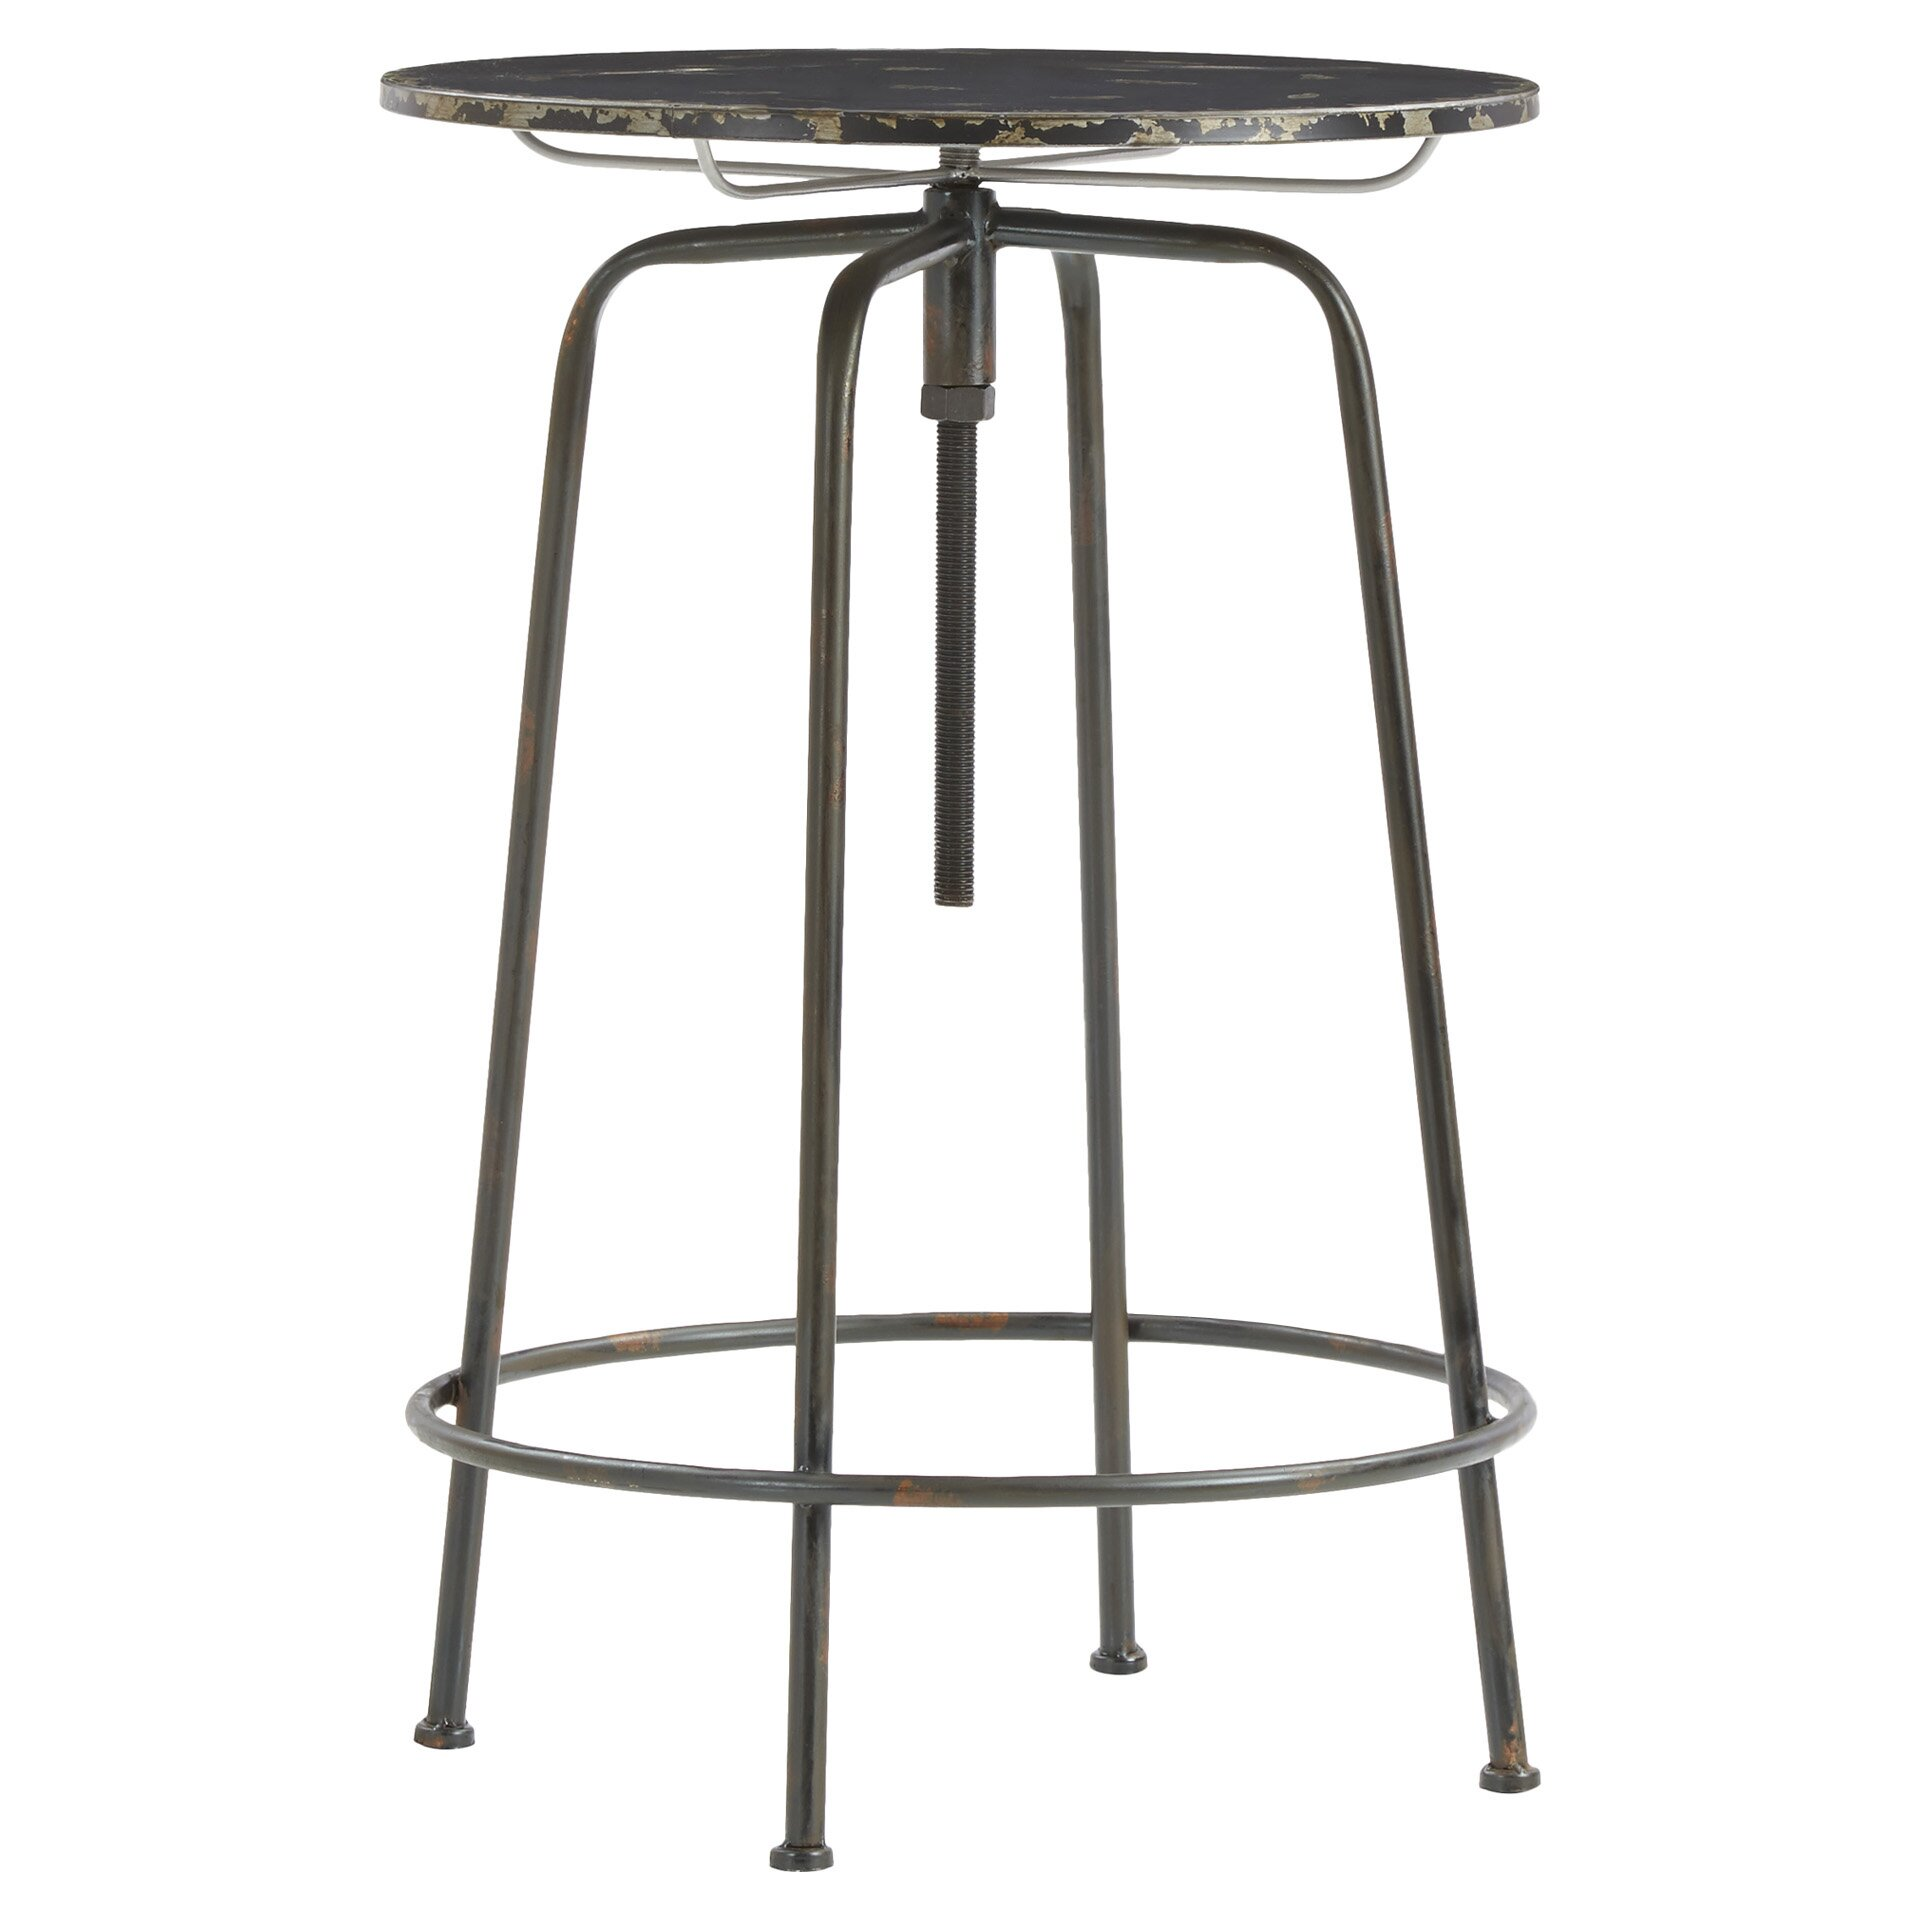 Loon Peak C2 AE 3 Piece Pub Table Set LOON1613 furthermore Meadowcraft Accessory Tables Wrought Iron Round Patio End Table Md505500001 additionally 103653228897066688 as well Canyonwood Pub Table TADN5308 TADN5308 additionally Patio Dining Sets. on round dining tables for 6